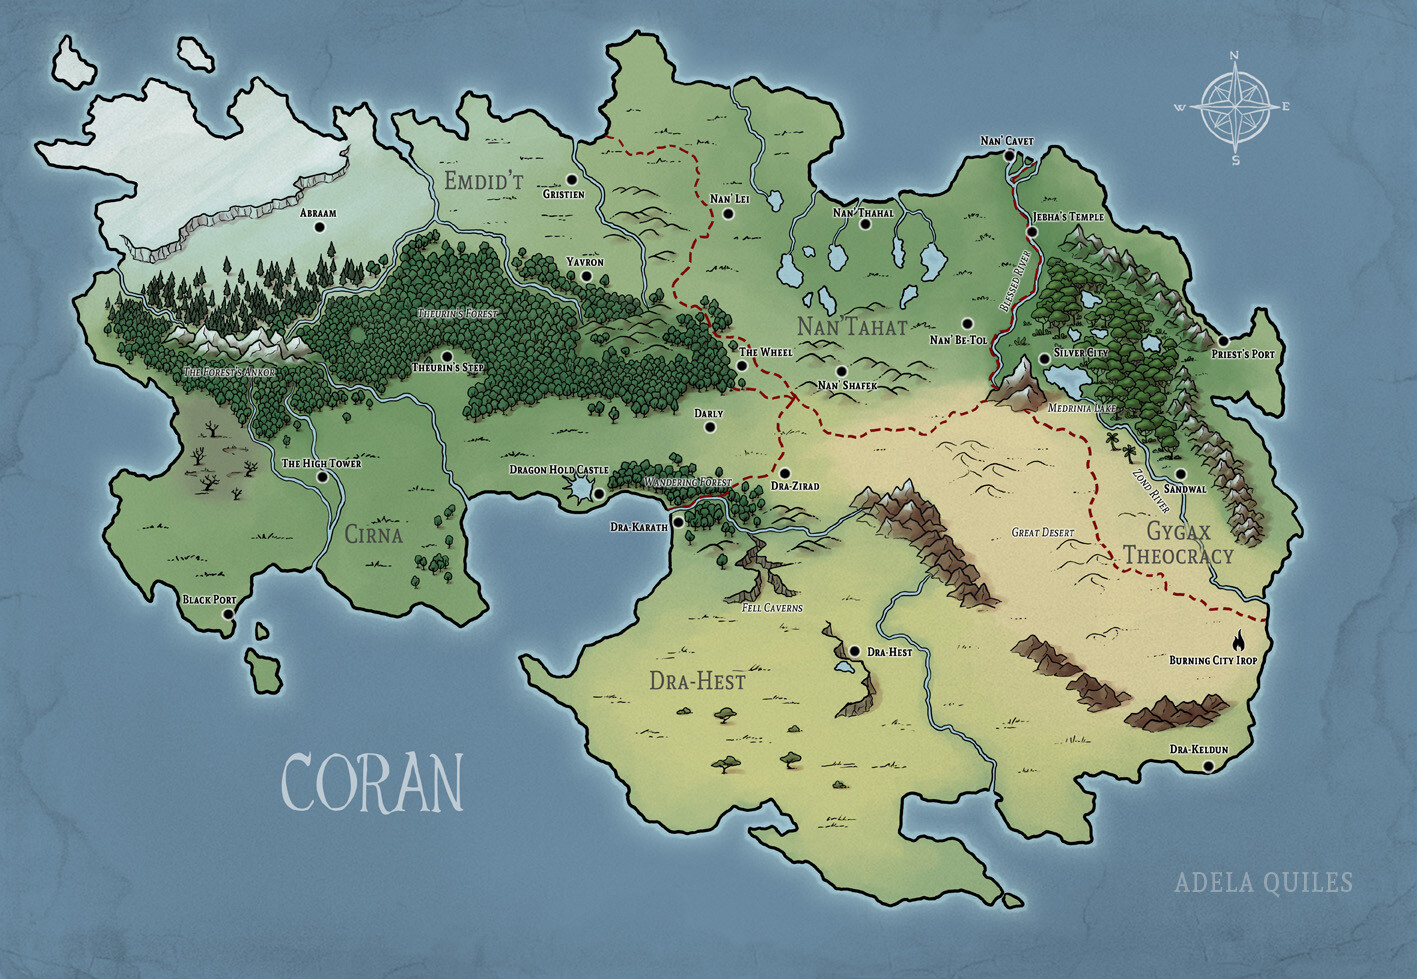 Coran -  commissioned map